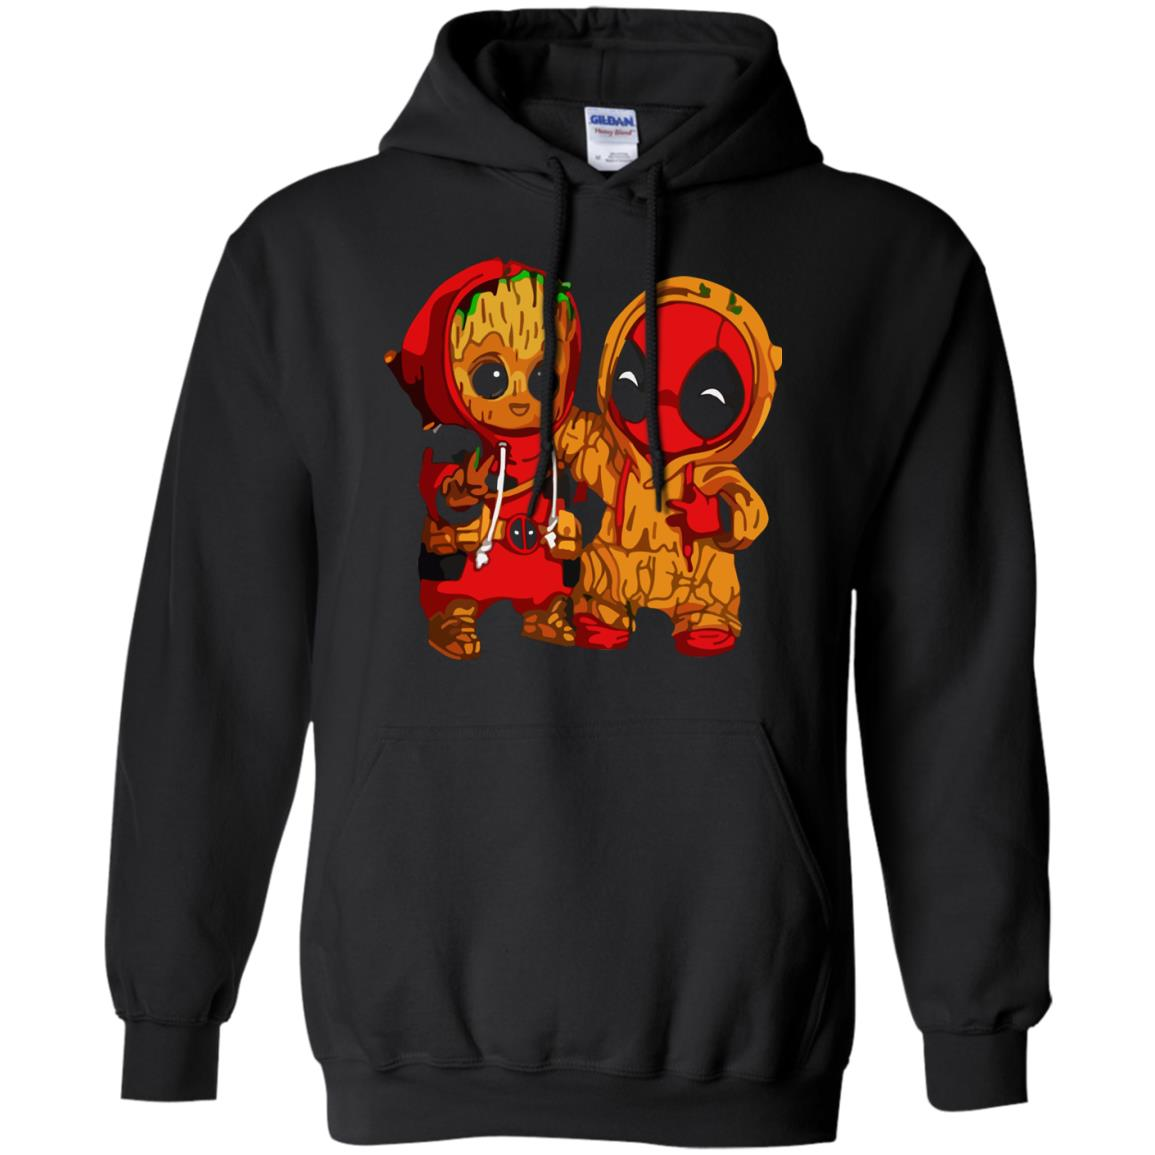 image 435 - Baby Groot And Deadpool Sweatshirt, Hoodie